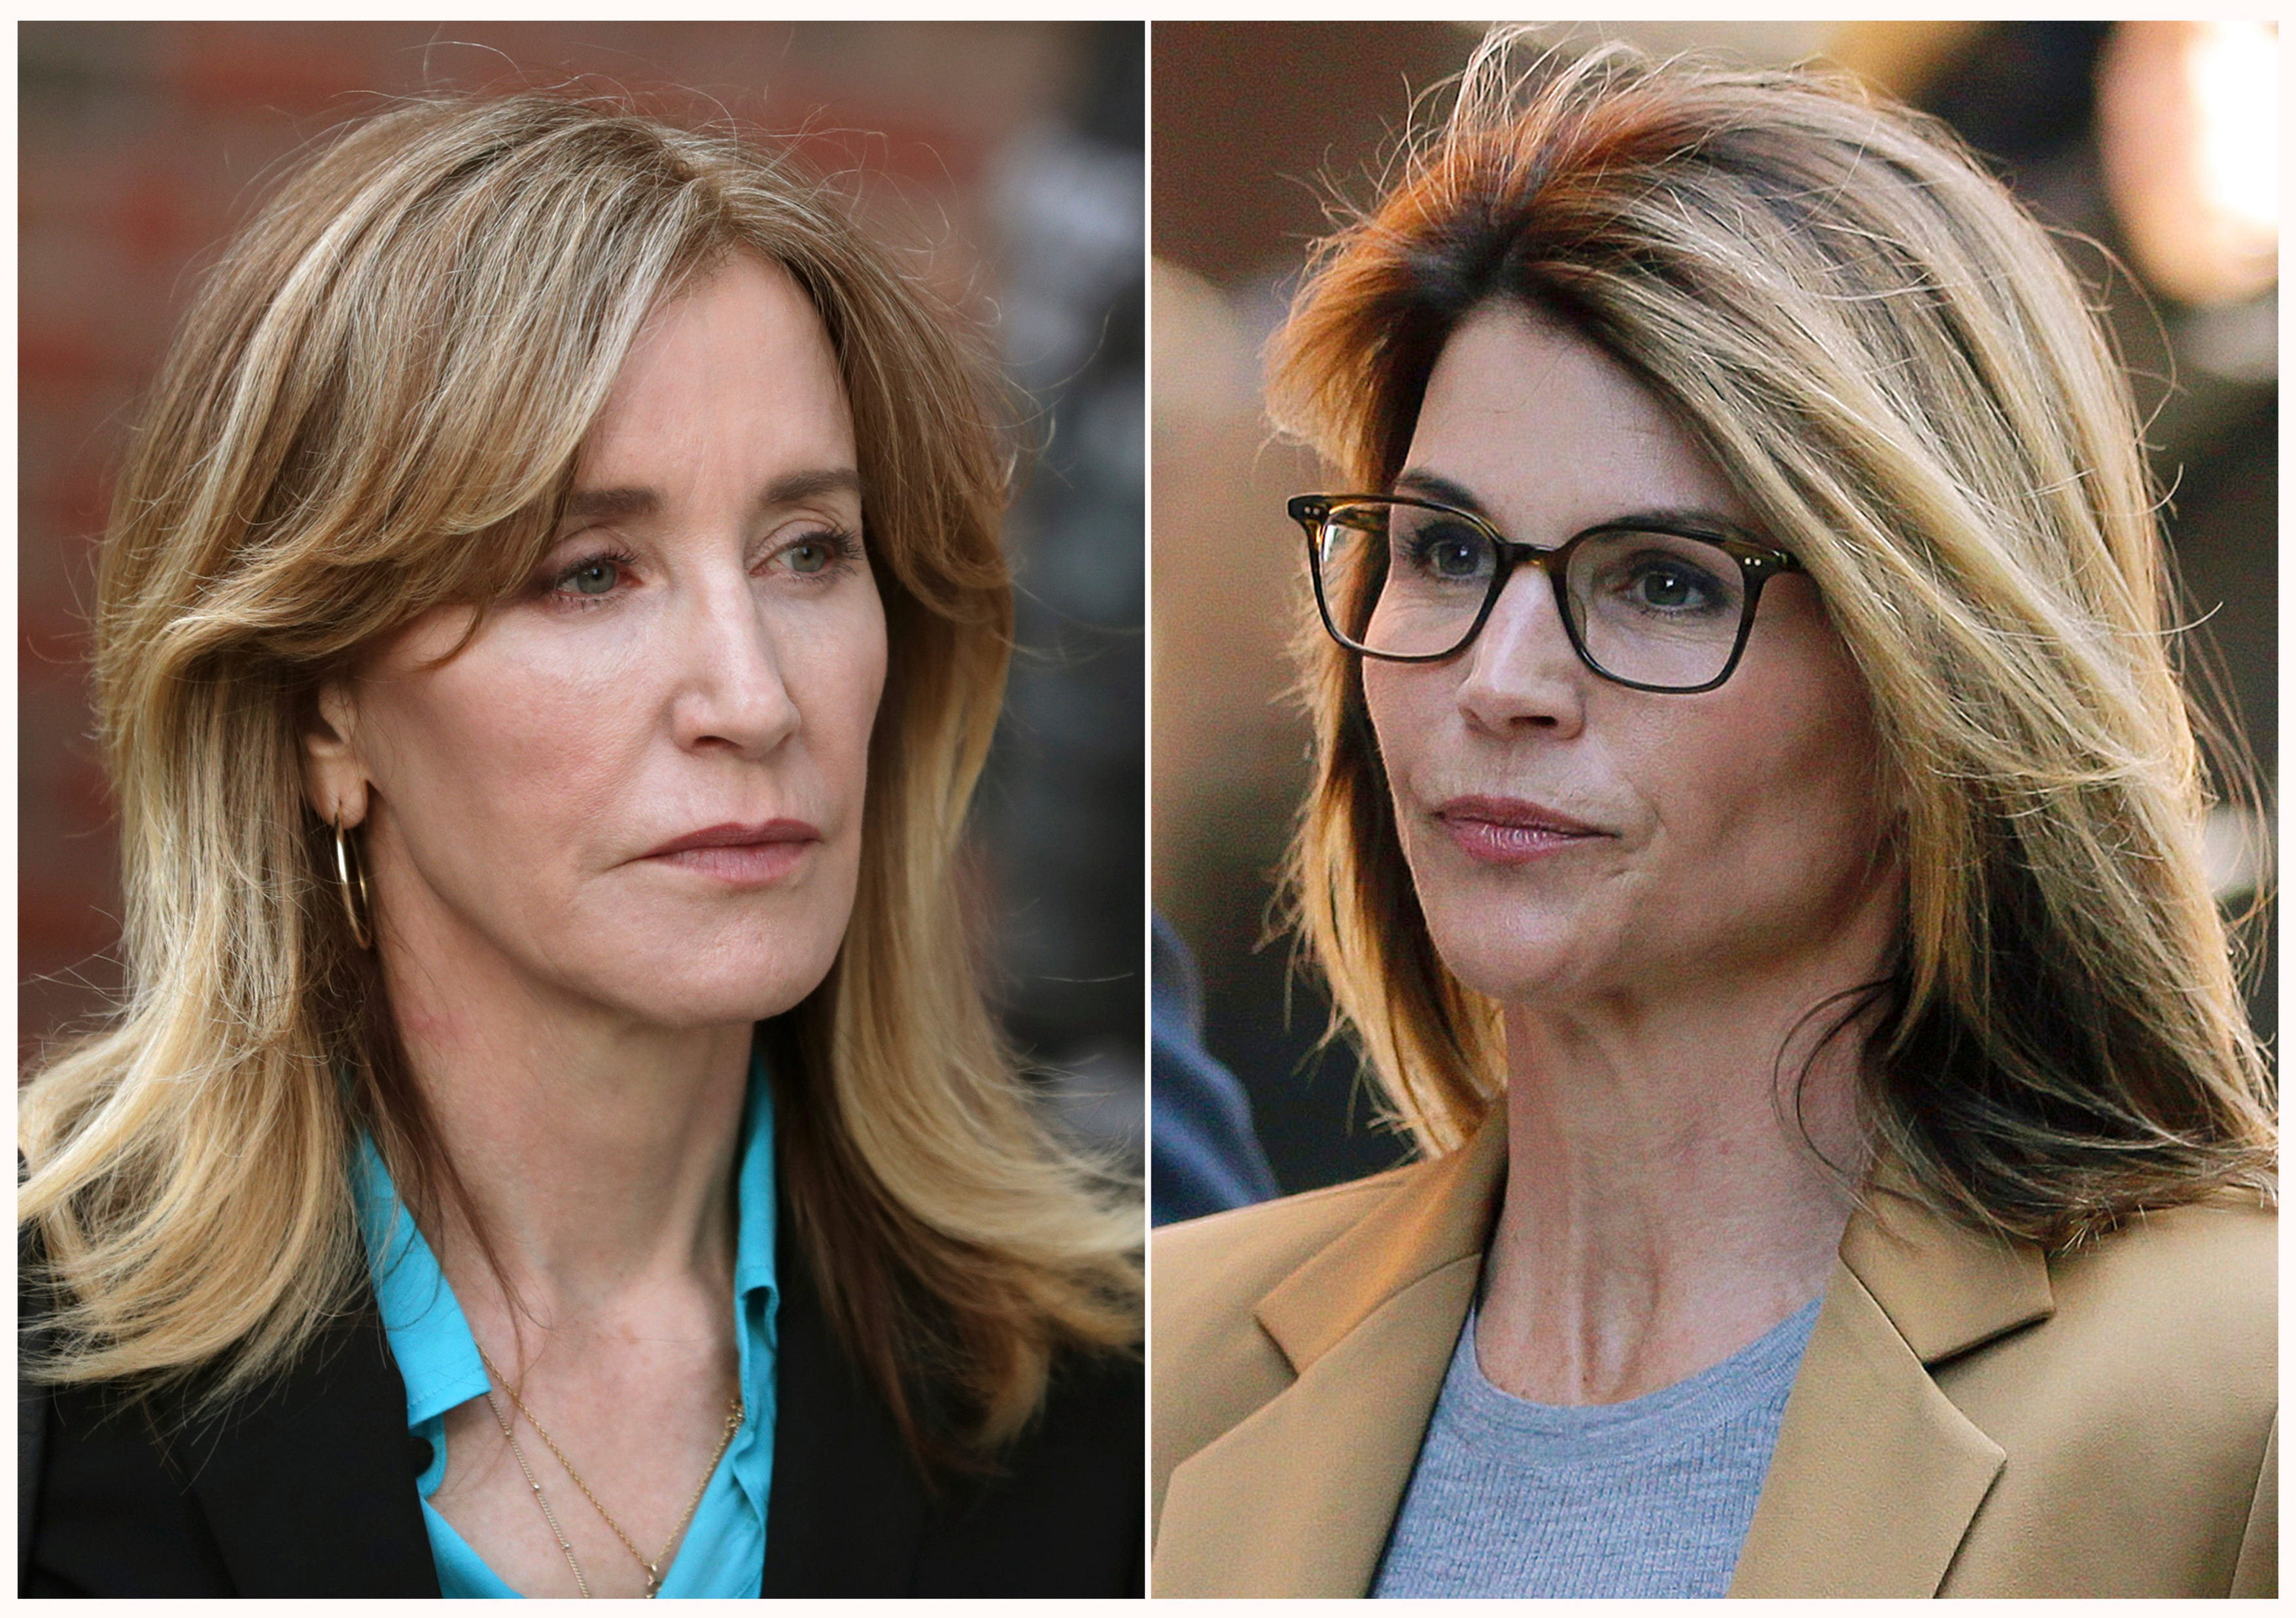 College admissions scandal gets a sexy Halloween costume that you have to see to believe